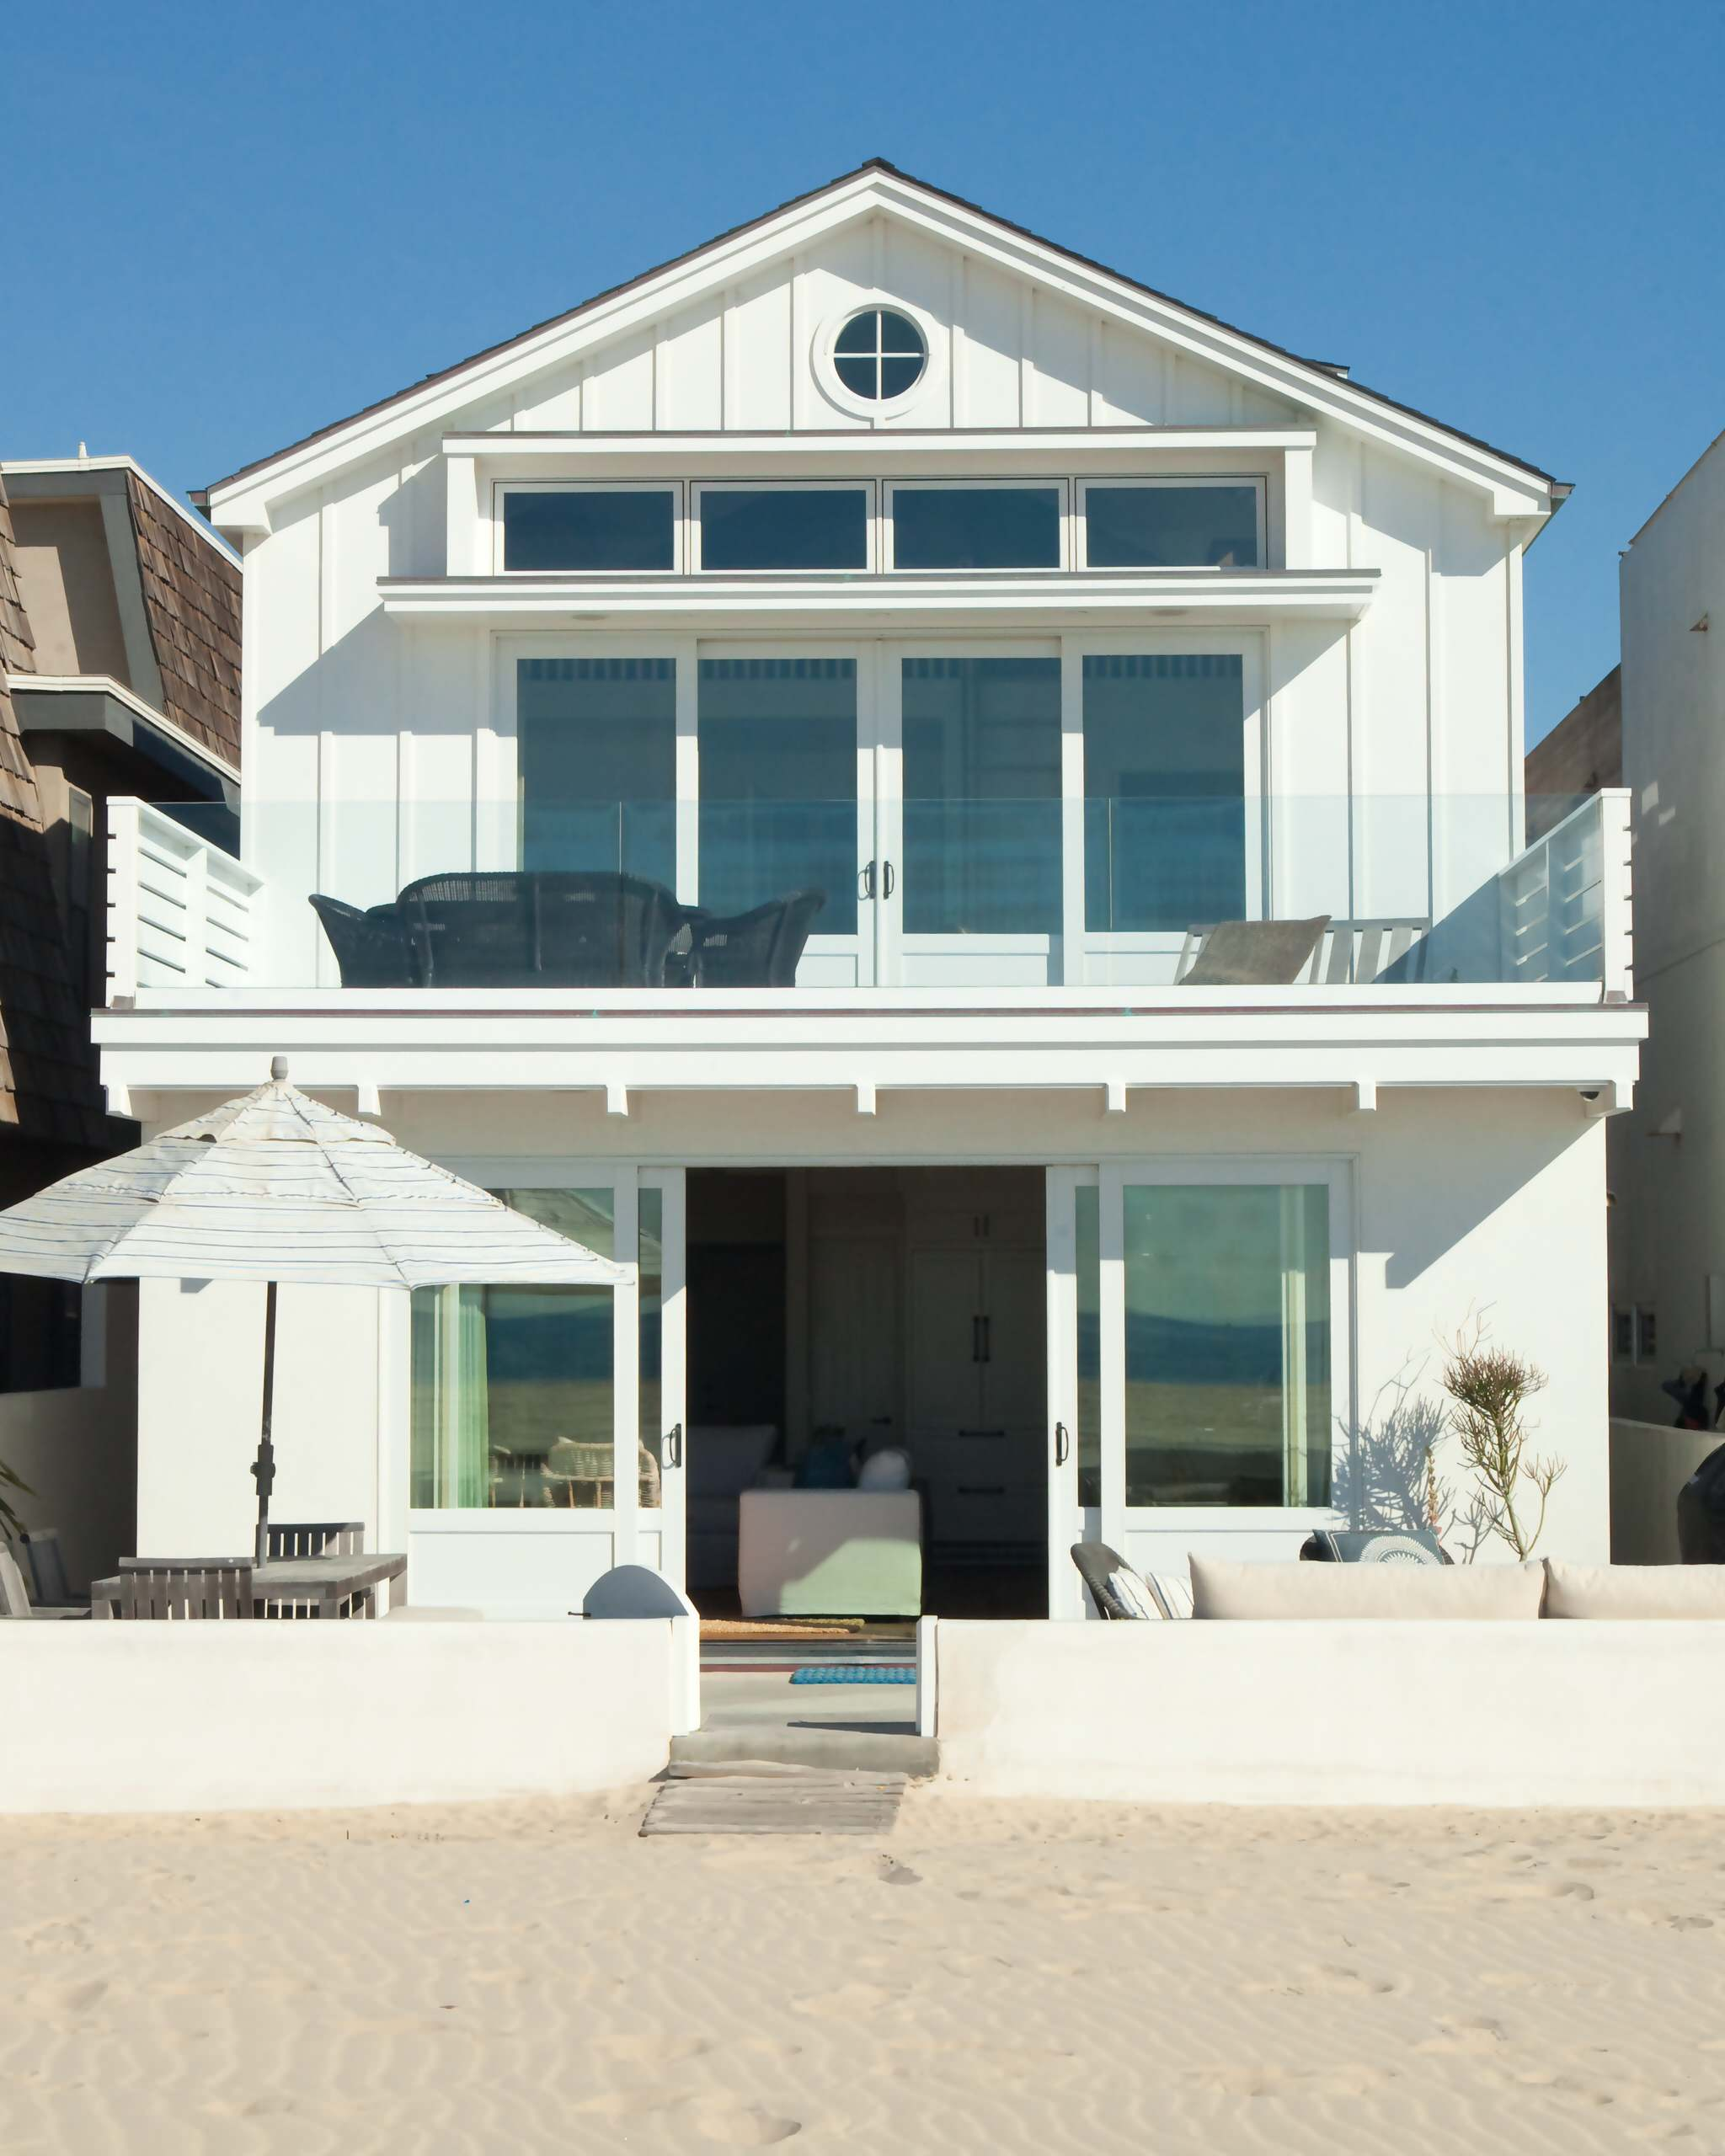 75 Beautiful Small Coastal Exterior Home Pictures Ideas January 2021 Houzz